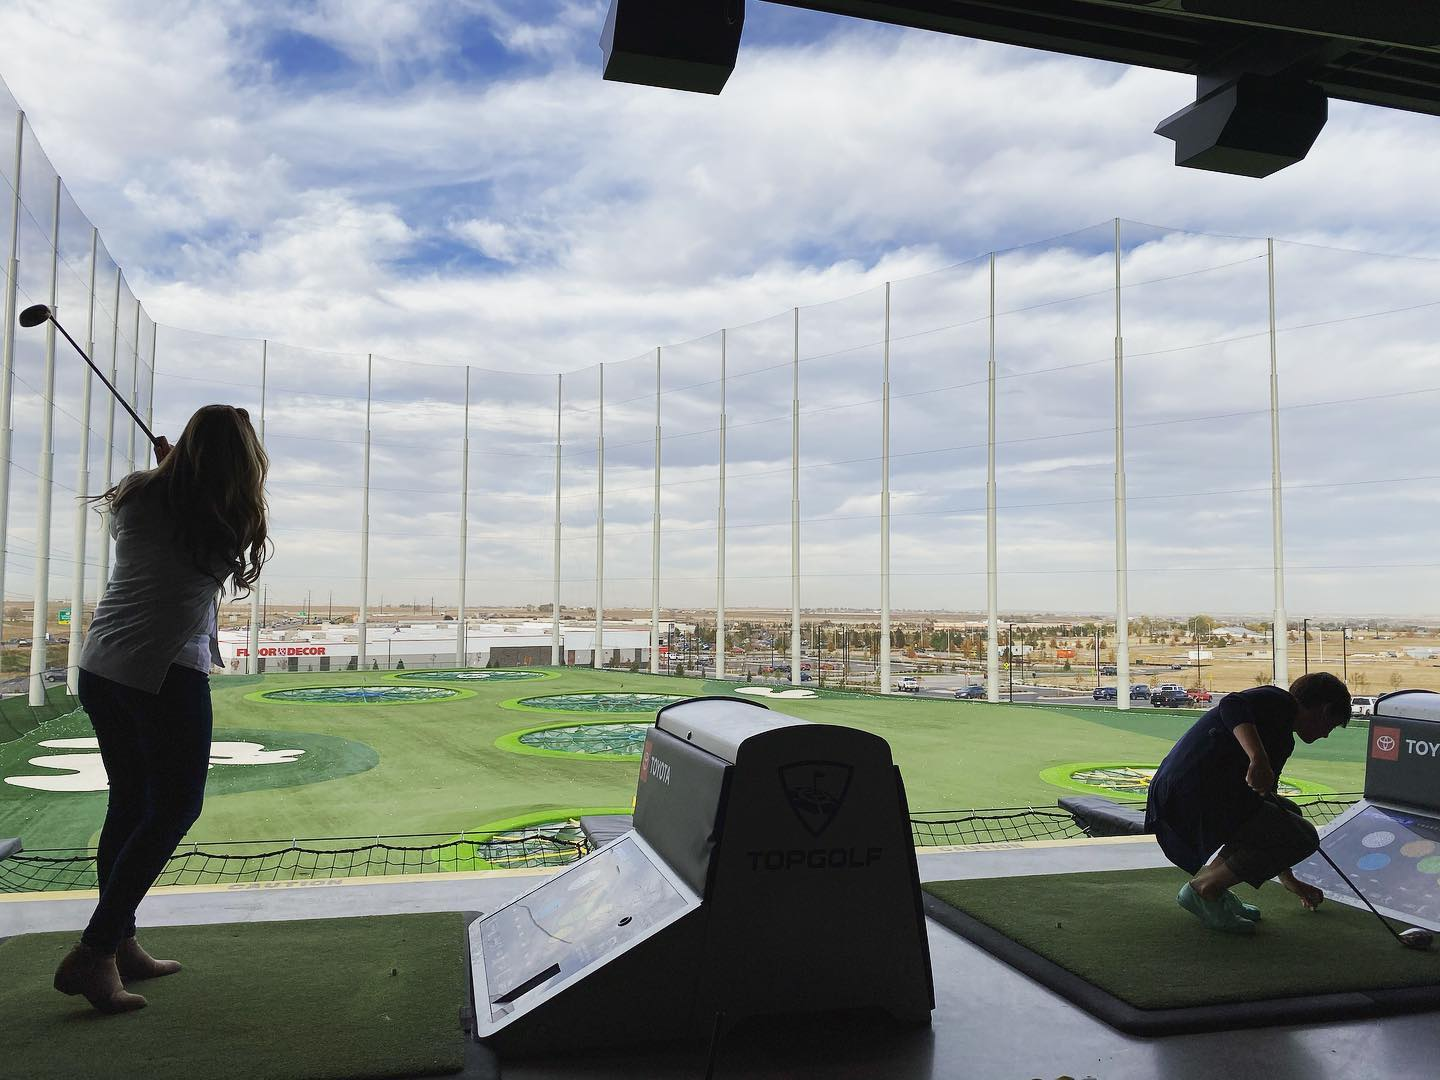 What a perfect evening to hit a few golf balls! A special thanks to @howellconstruction for taking us to Top Golf for a fun, relaxing evening!